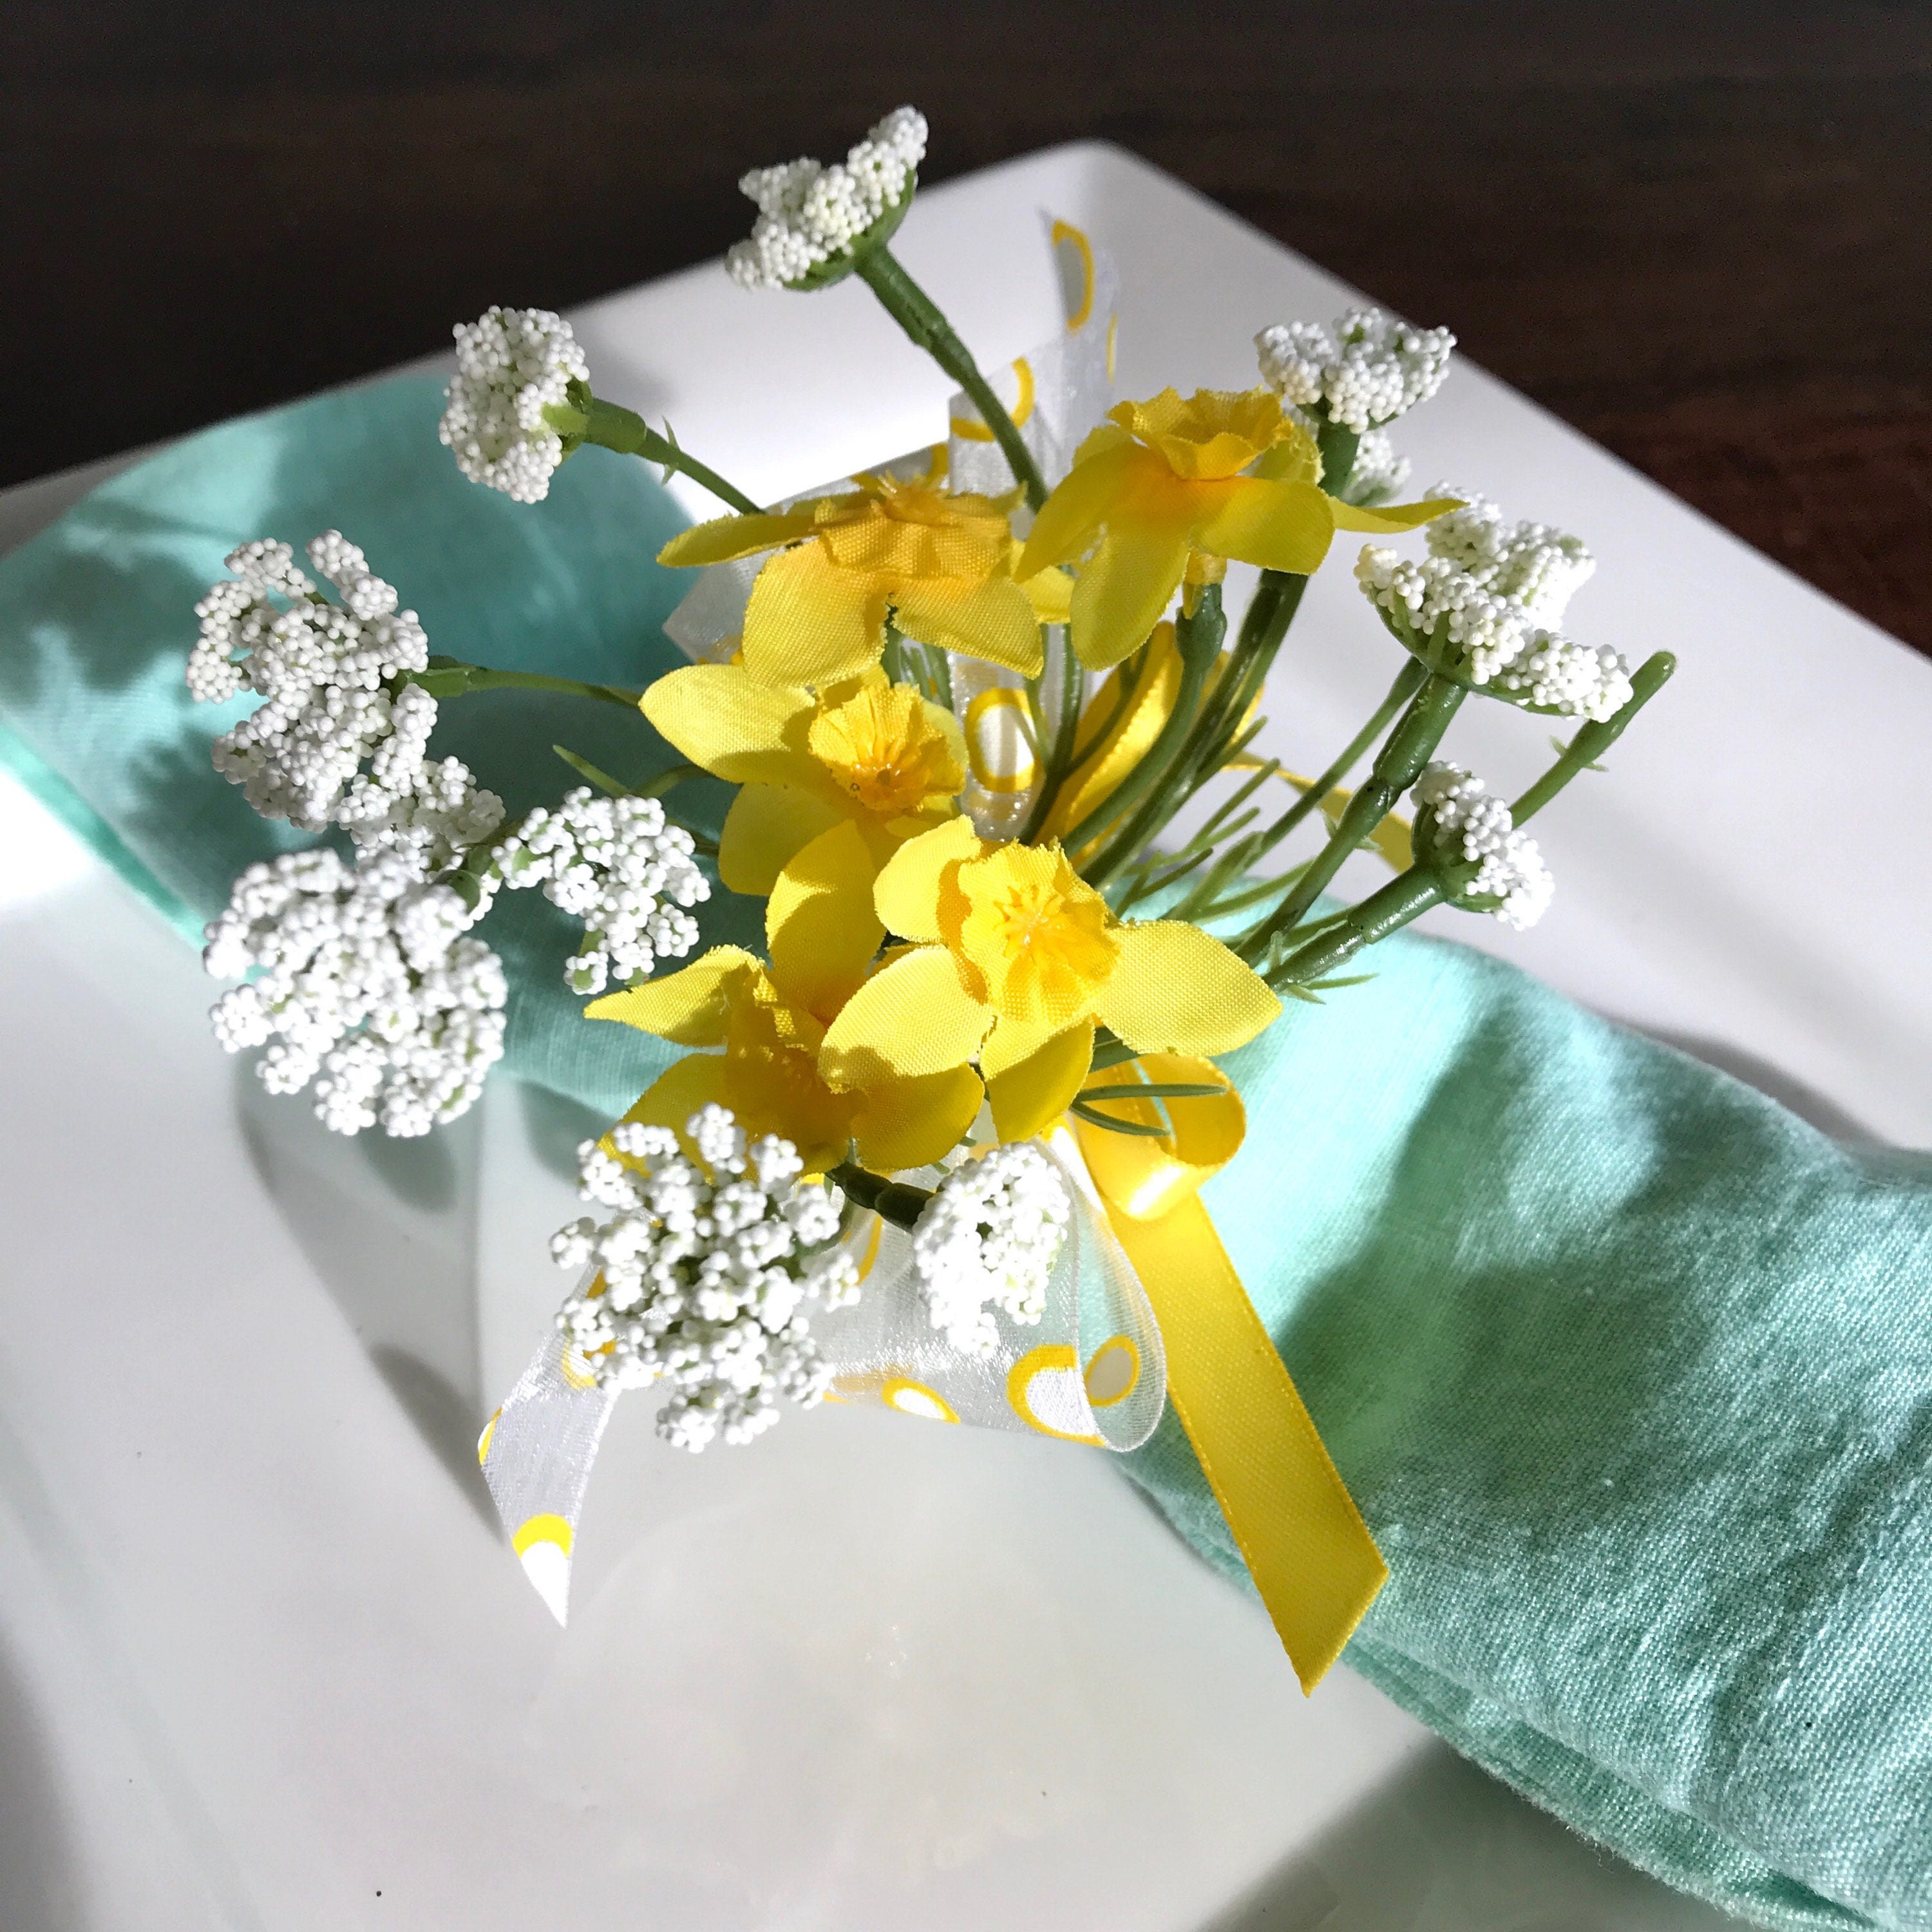 Napkin Ring Yellow Daffodils Queen Anne Lace Wedding Decoration Wedding Showers Easter